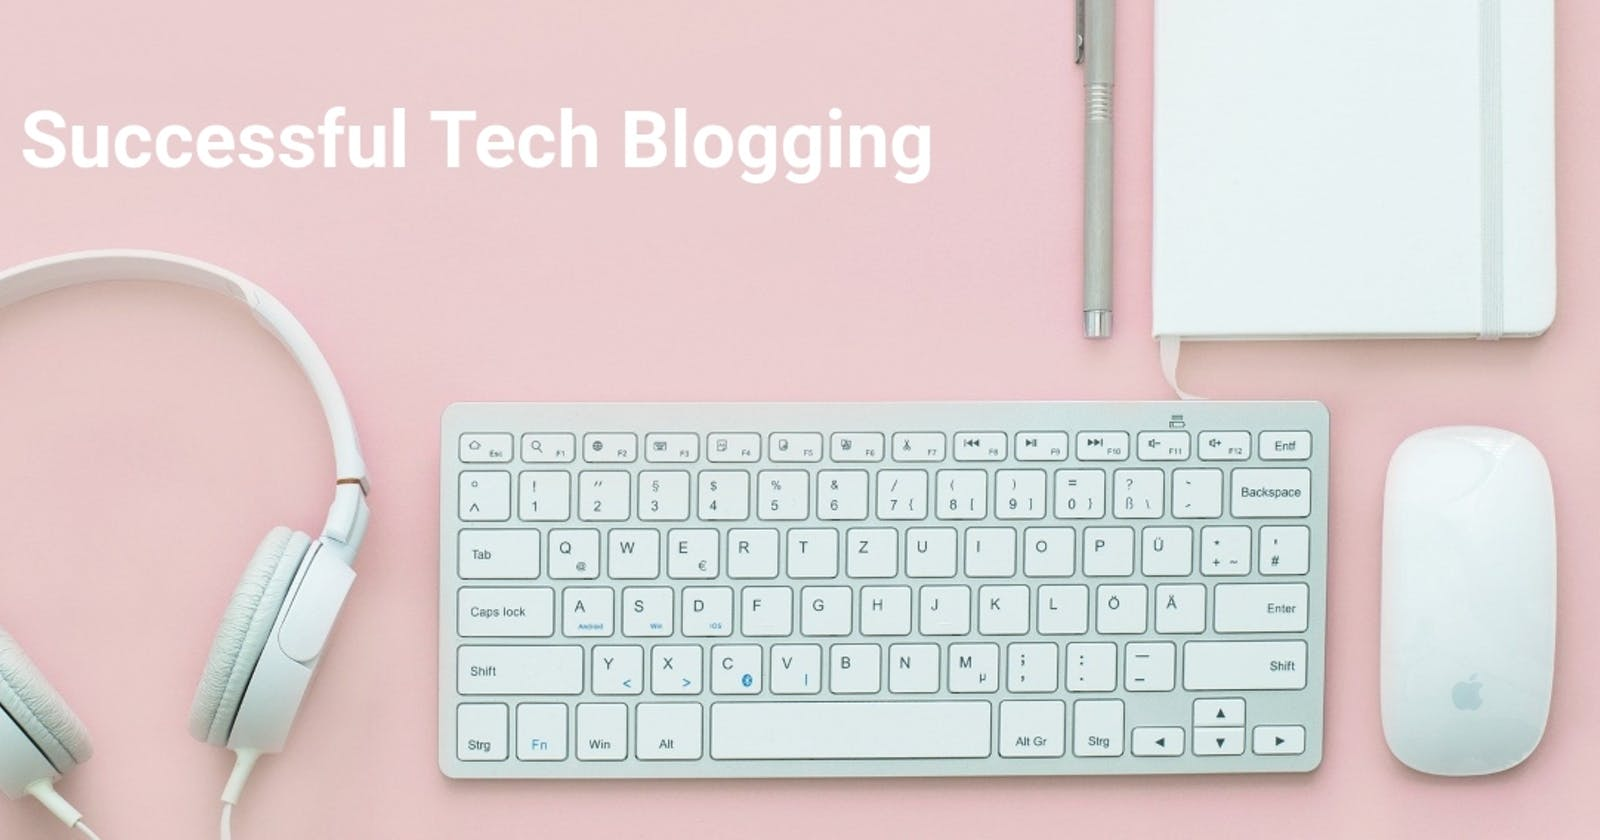 What Makes A Tech Blog 'Successful'?